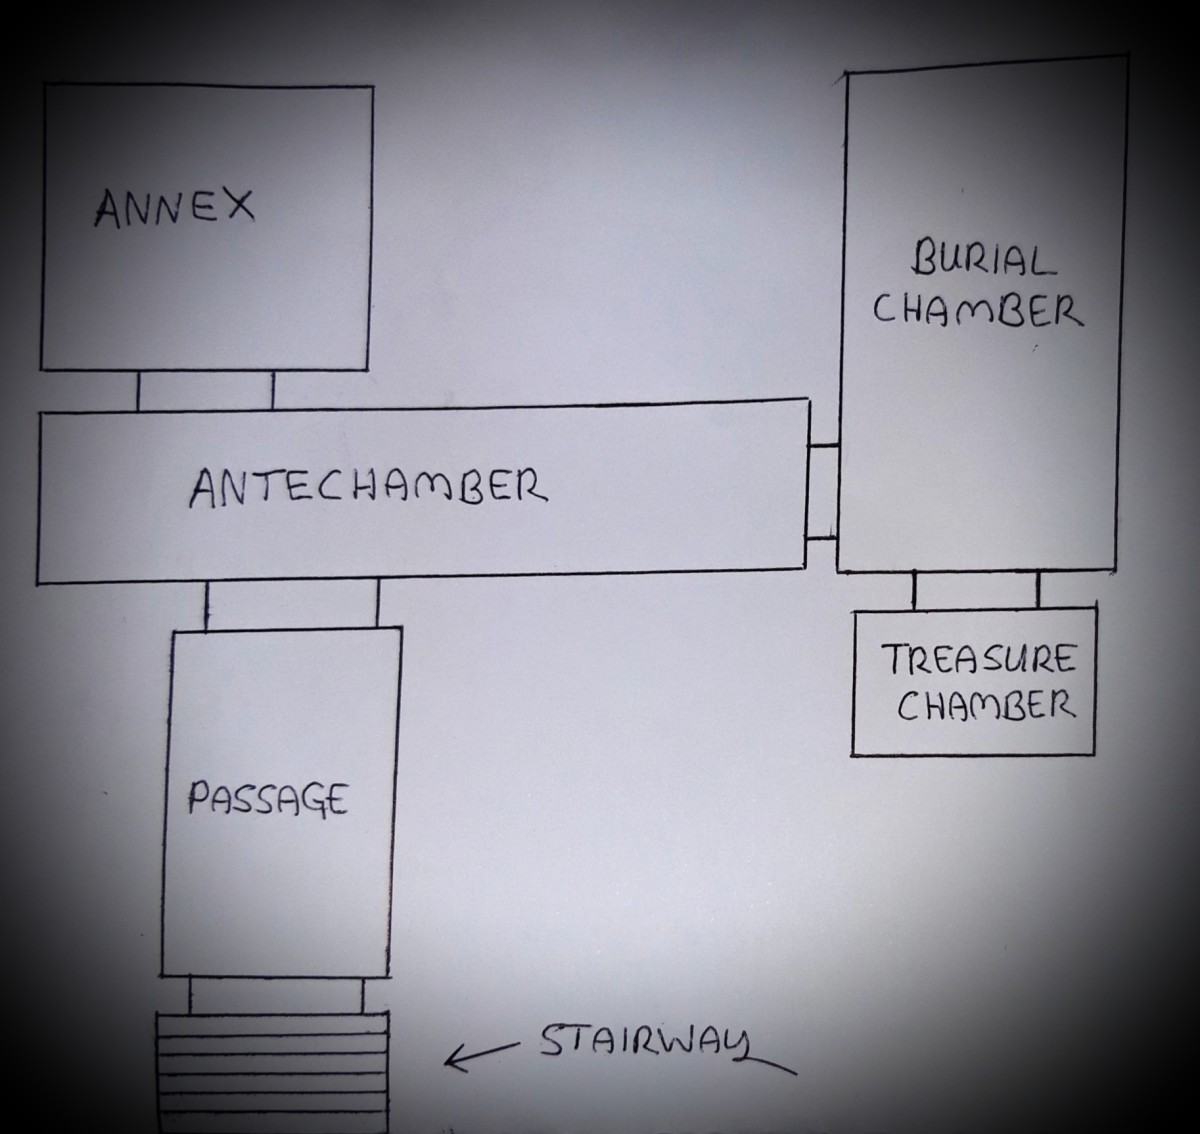 King Tutankhamun's burial chambers layout showing a stairway leading down to a passage and then access to four rooms.